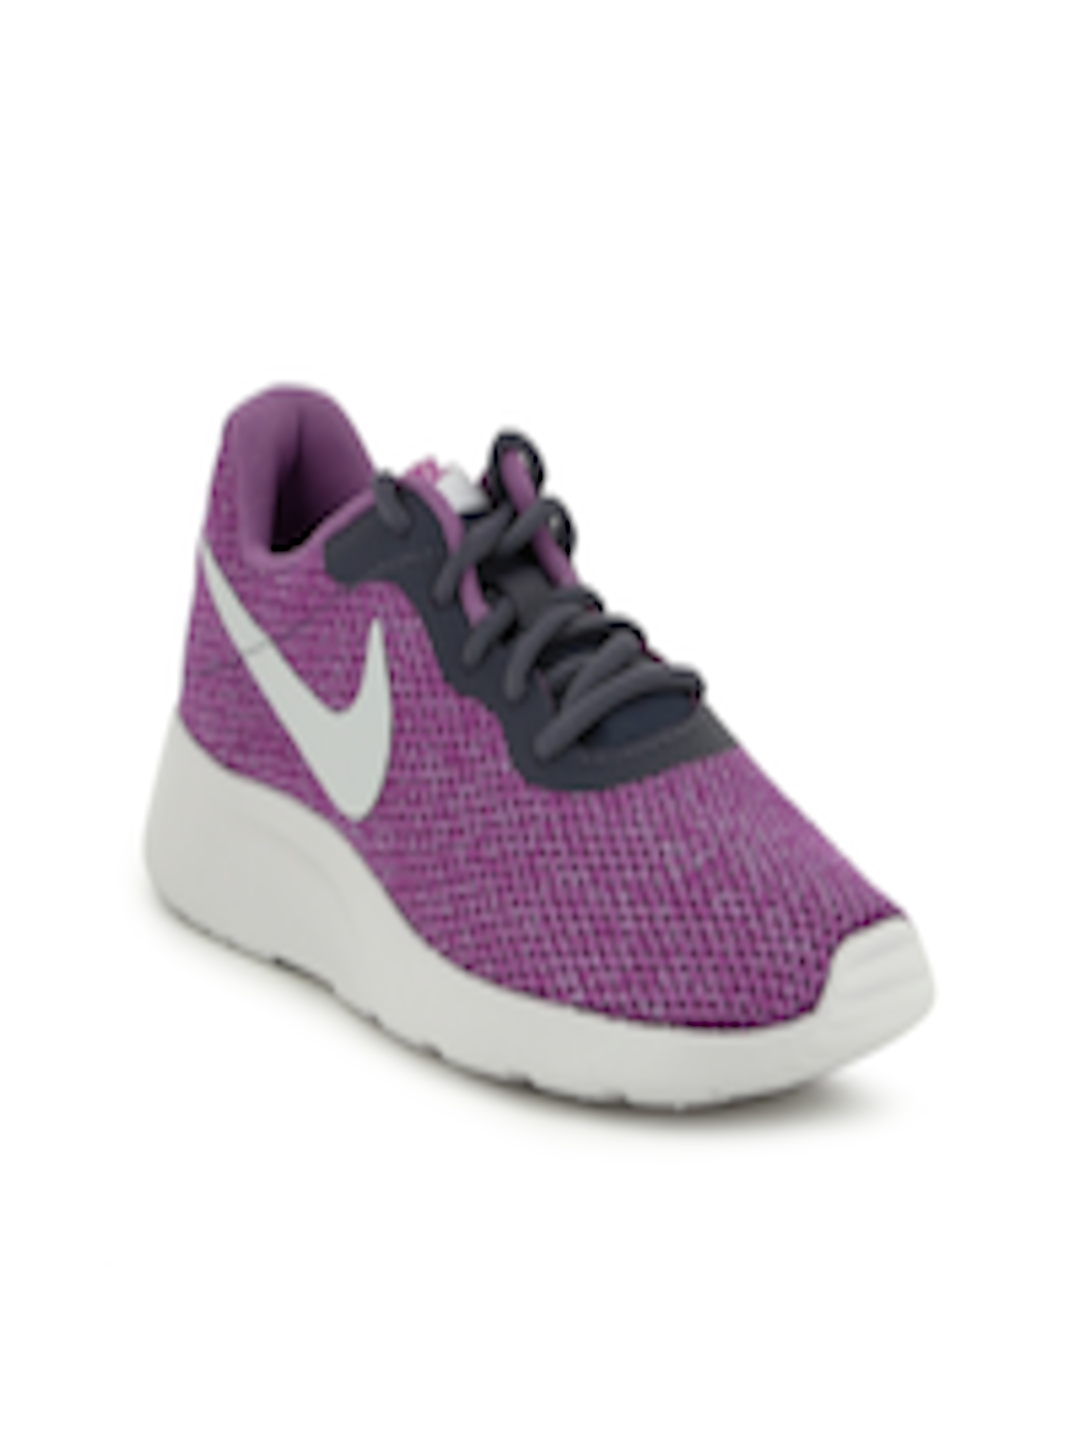 c184ed5a2e4034 low cost buy nike women purple tanjun sneakers casual shoes for women  2375645 myntra 8bd65 5a656